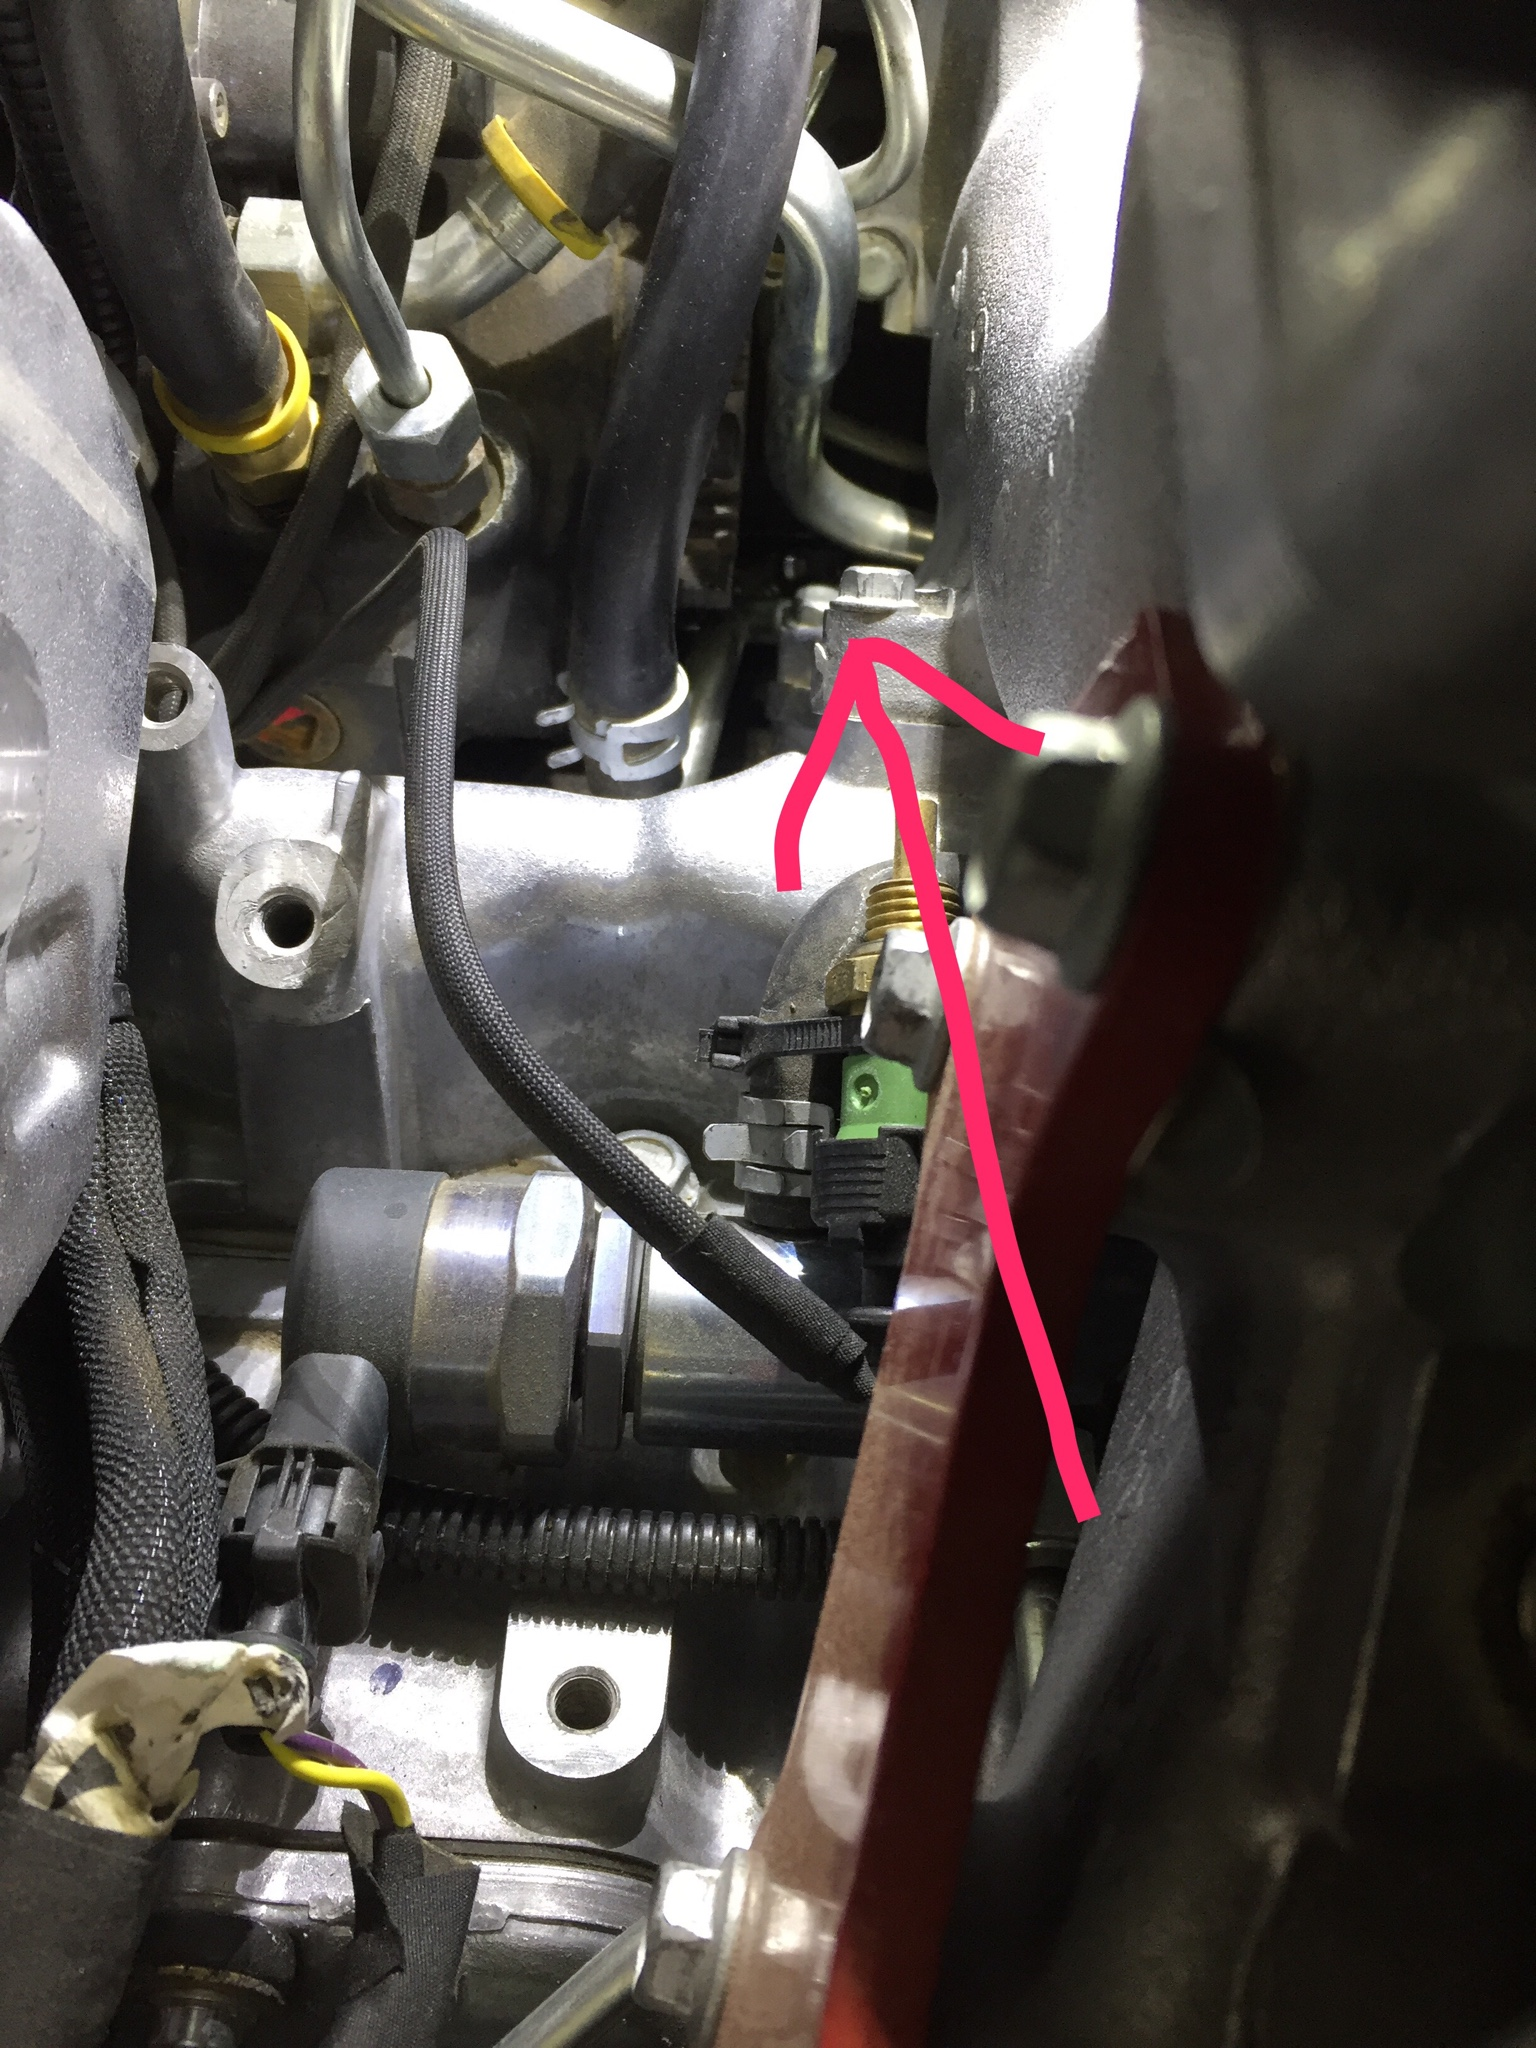 F Efd F Adbc A F E on Duramax Pcv Valve Location